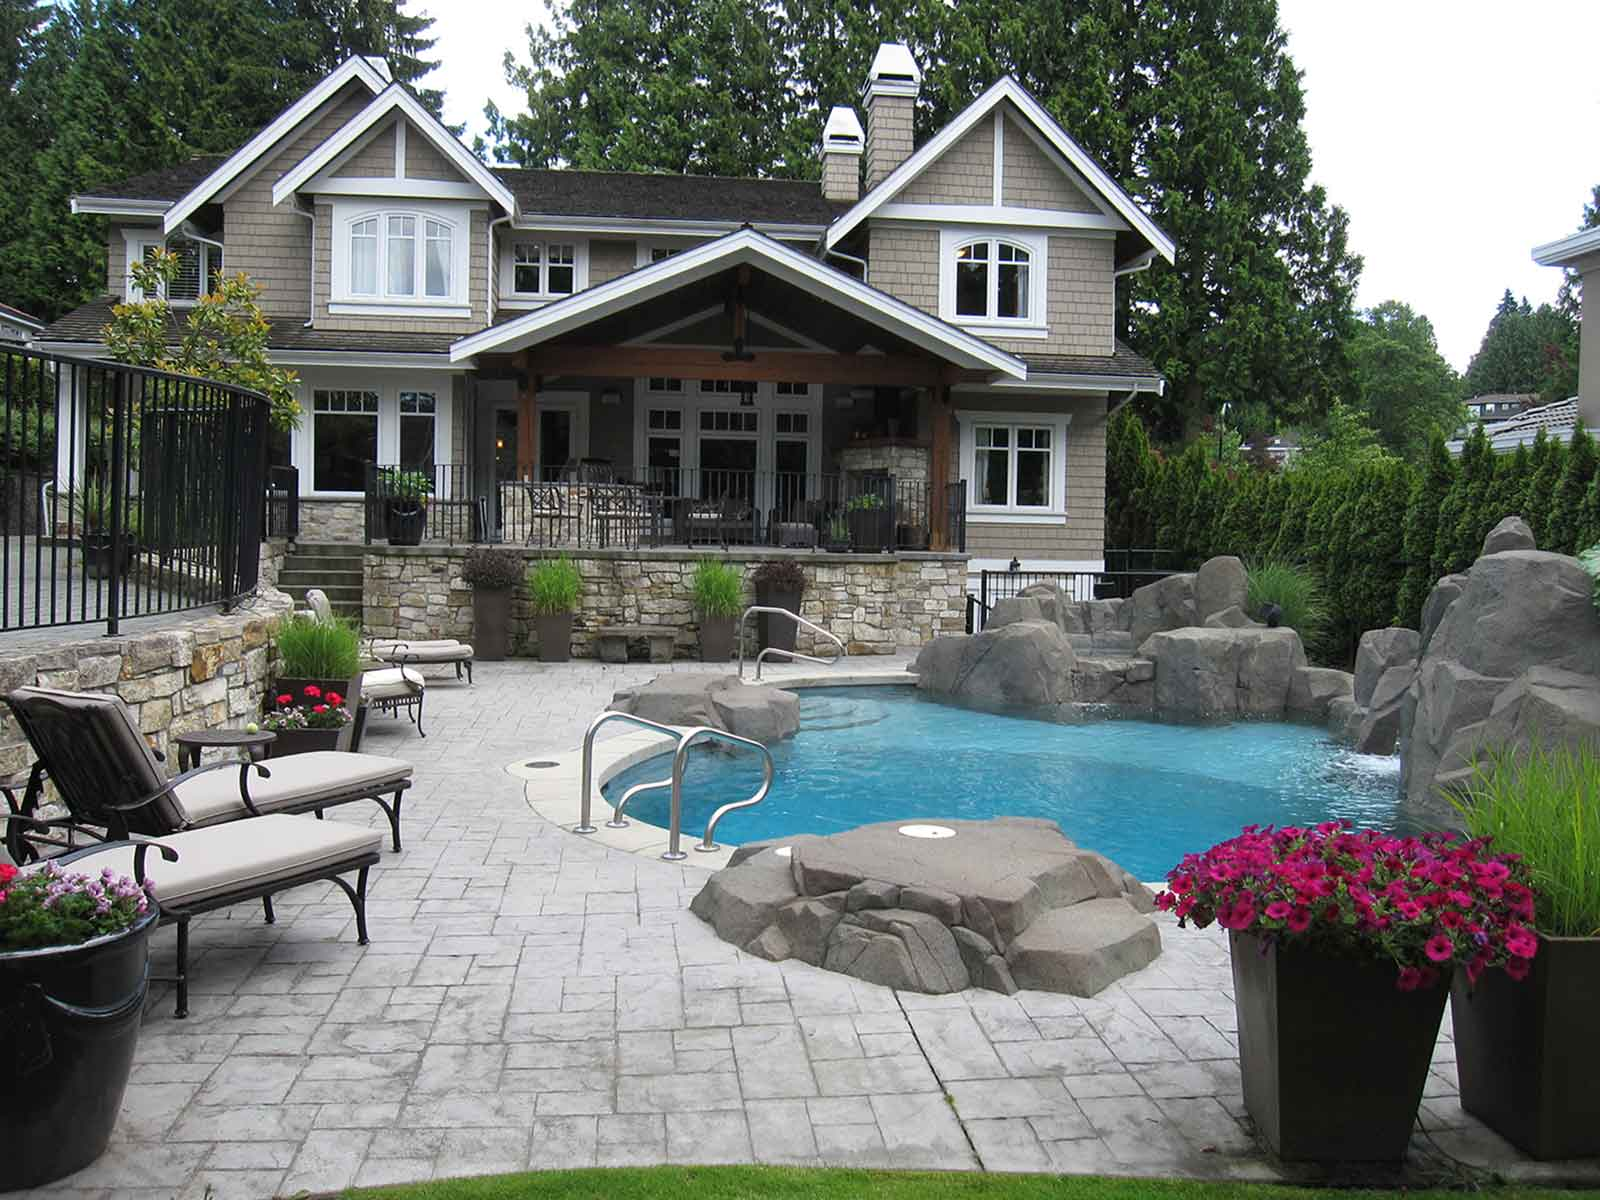 In-ground swimming pool with patio